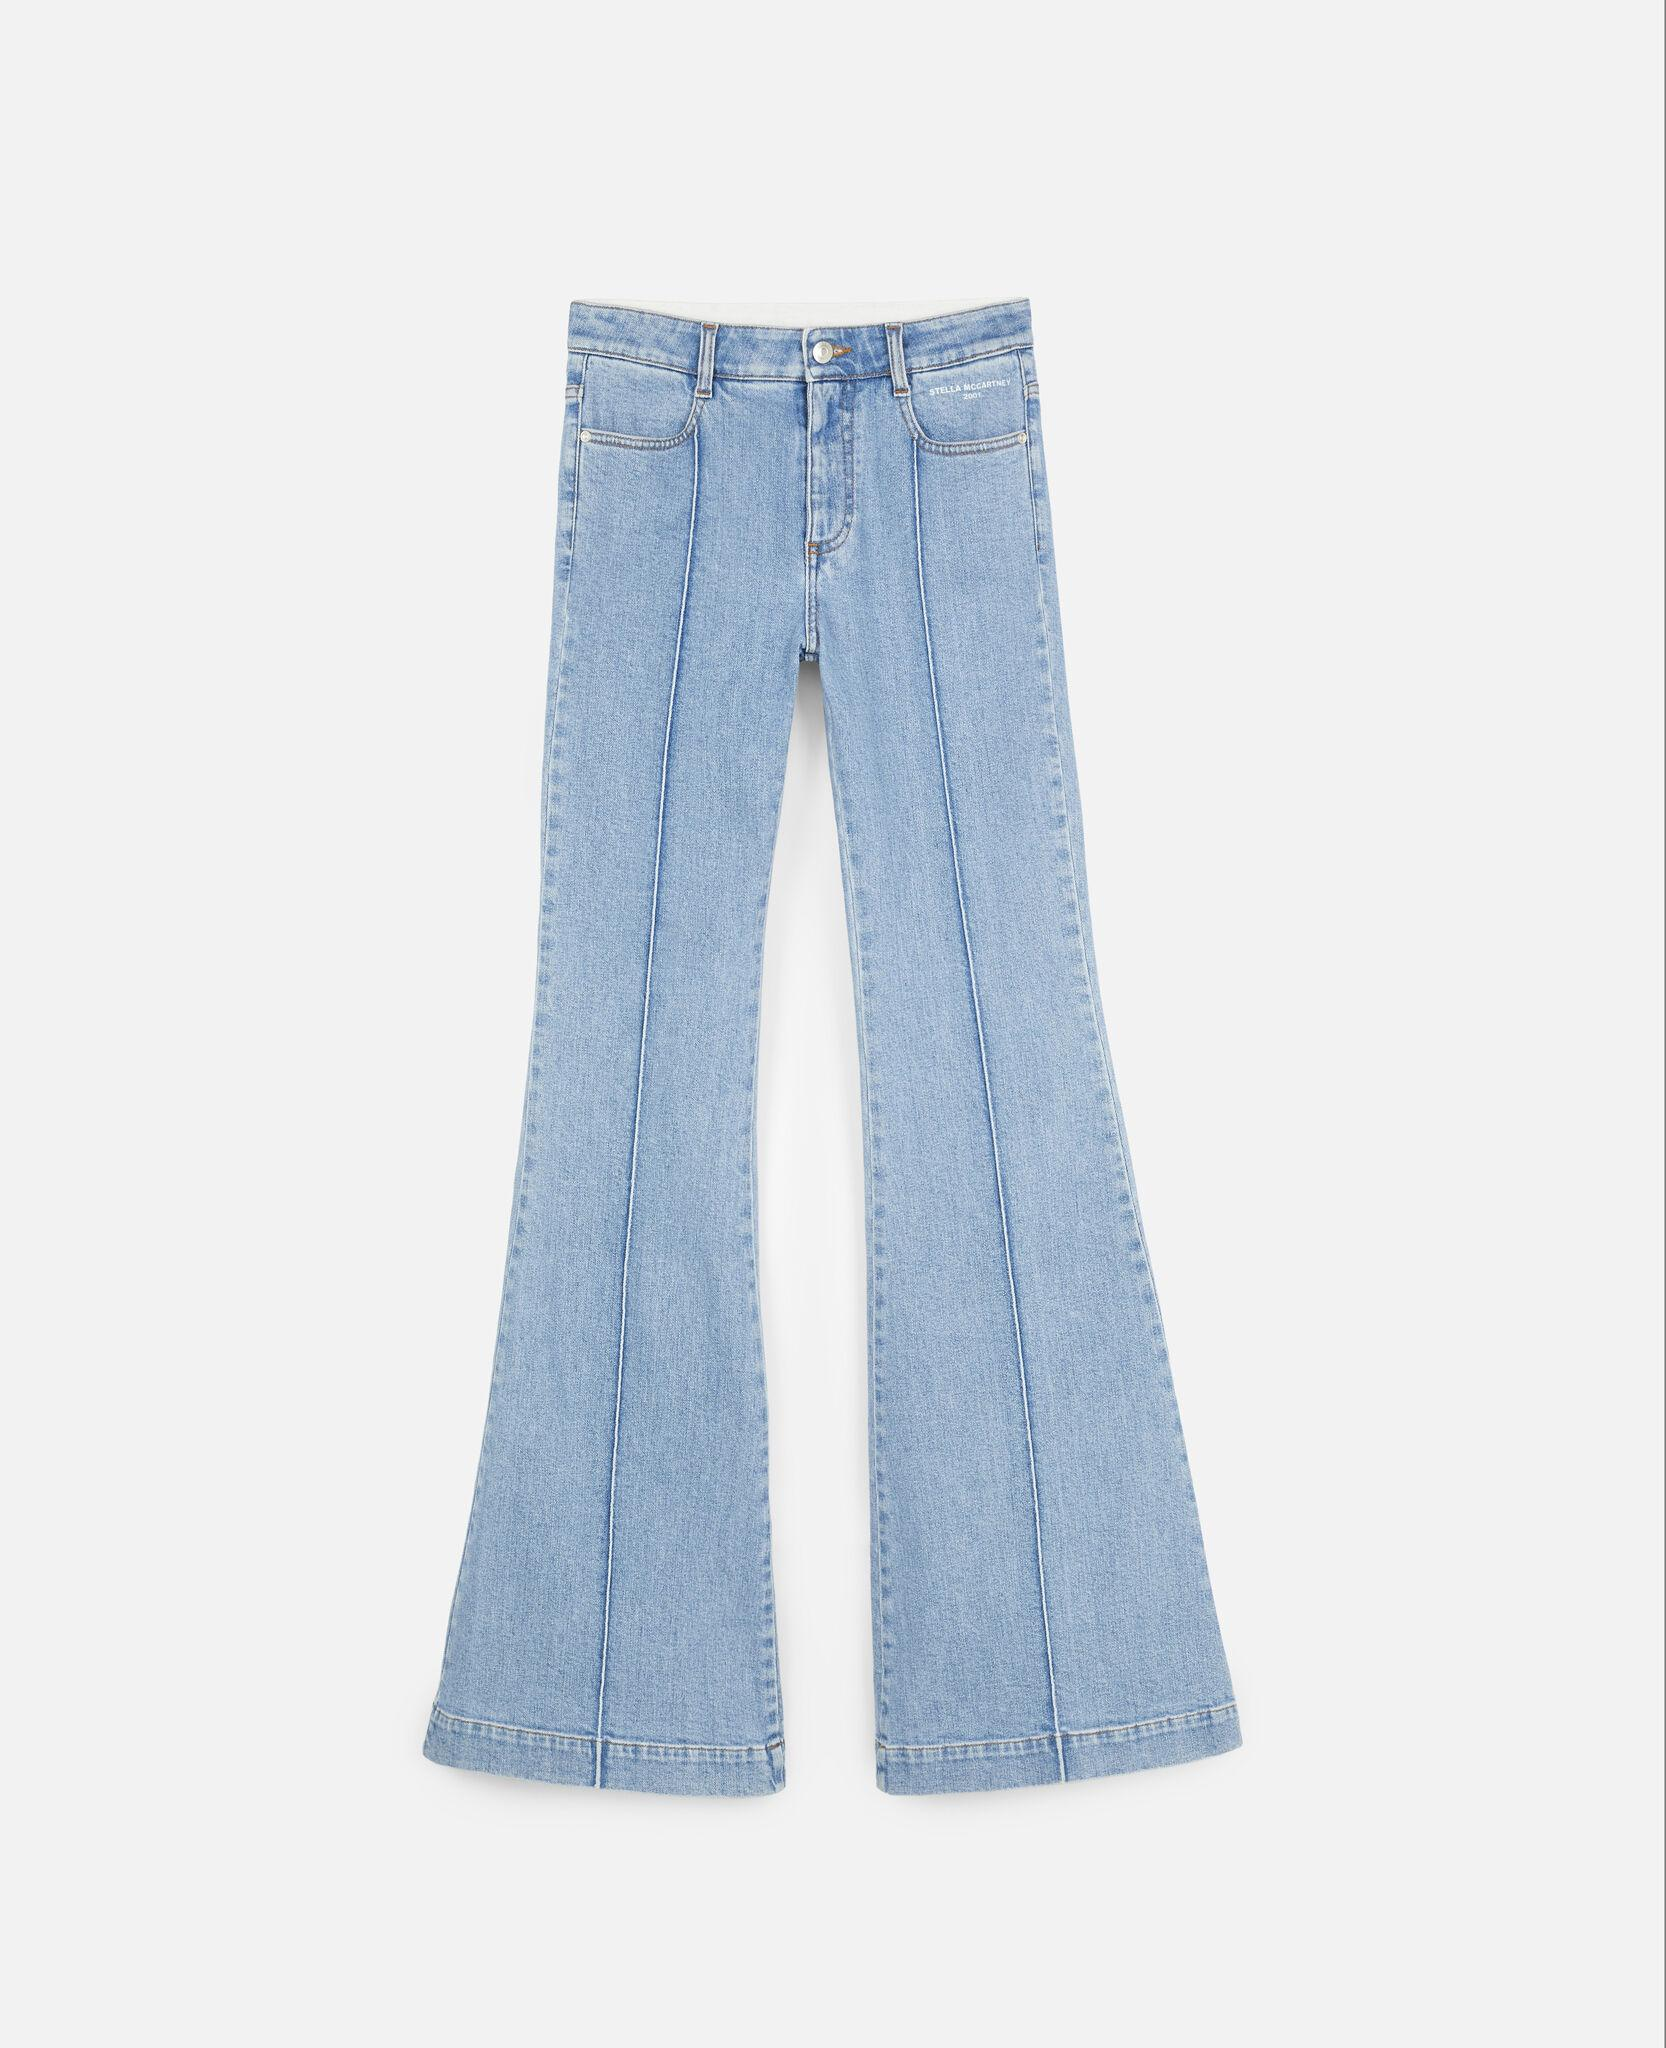 The '70s Flared Pants